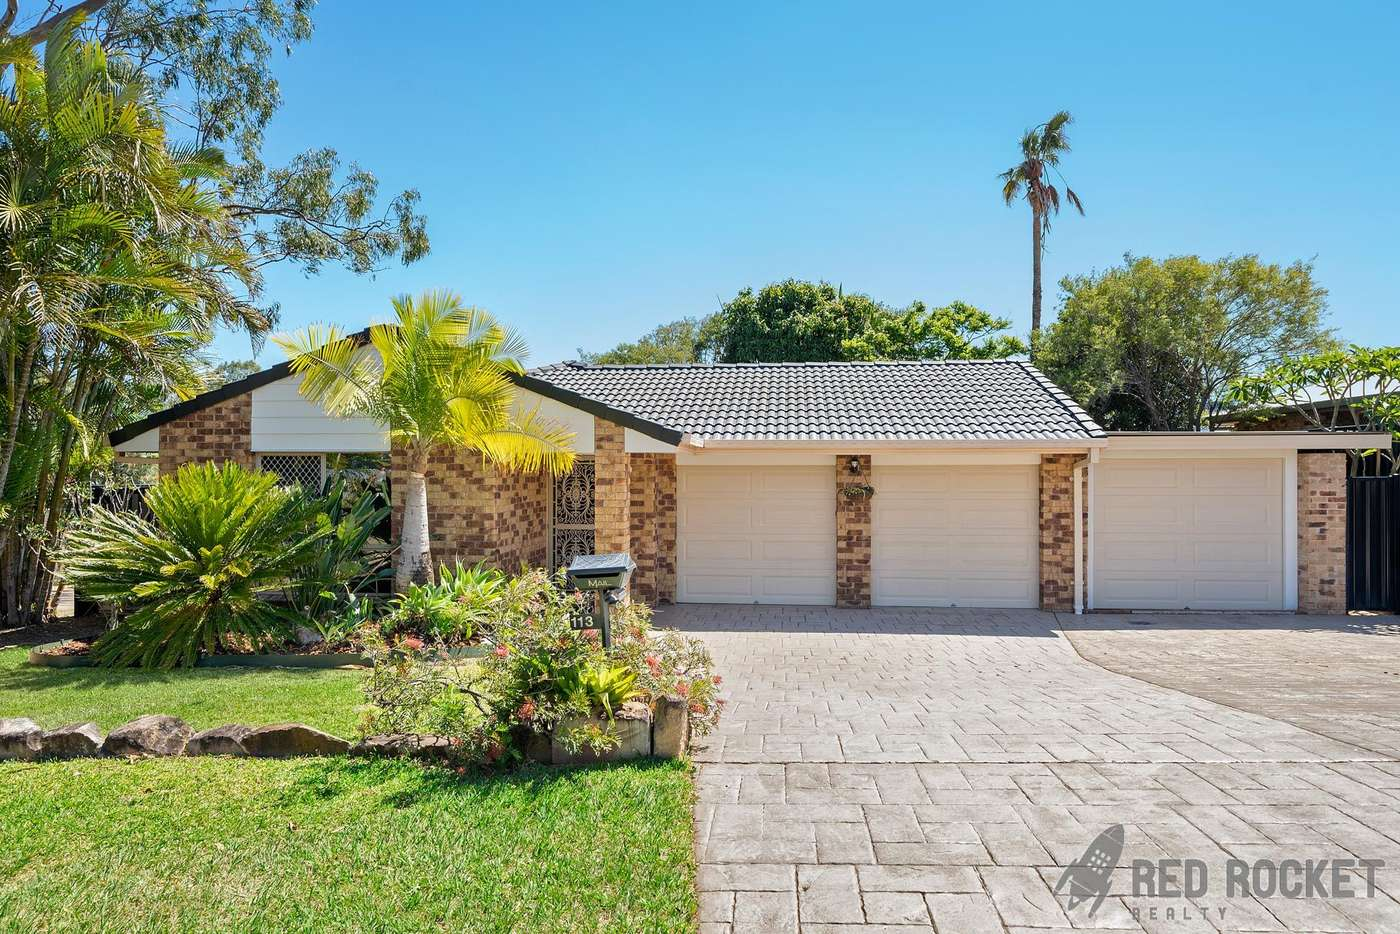 Main view of Homely house listing, 113 Pohon Drive, Tanah Merah QLD 4128